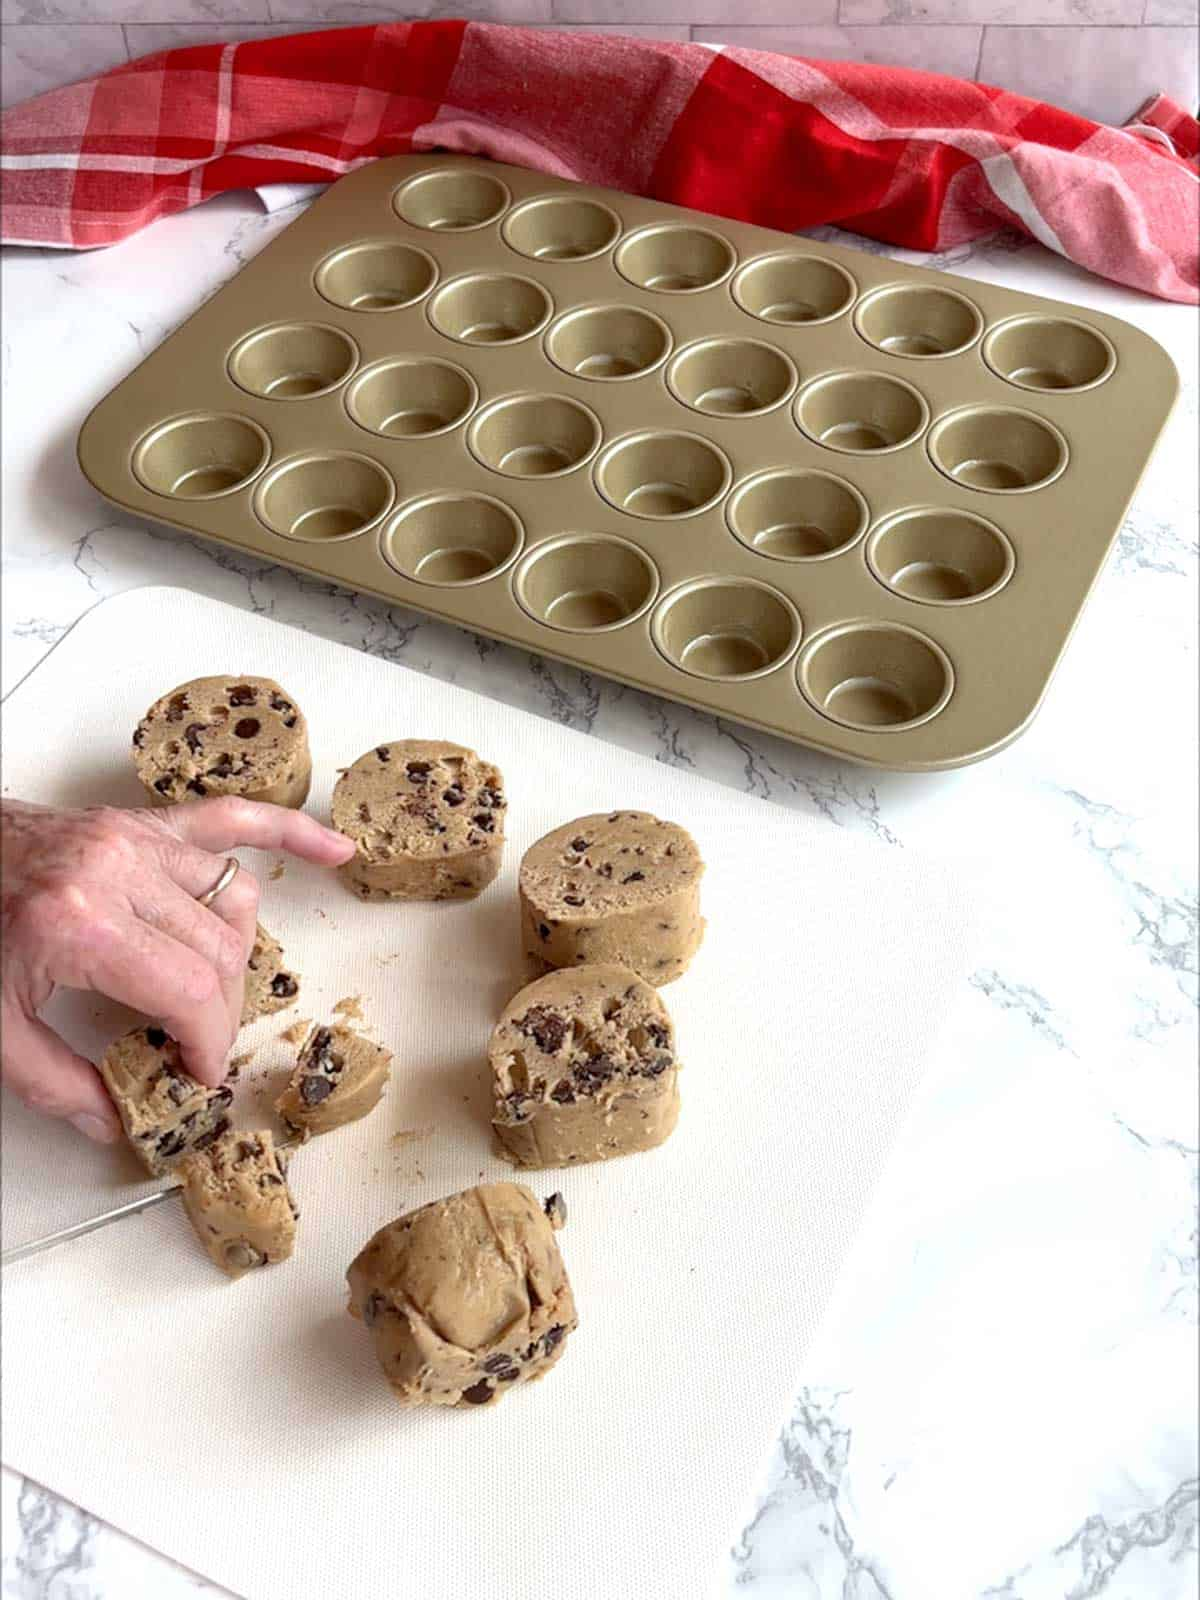 Cutting cookie dough rounds into four pieces.